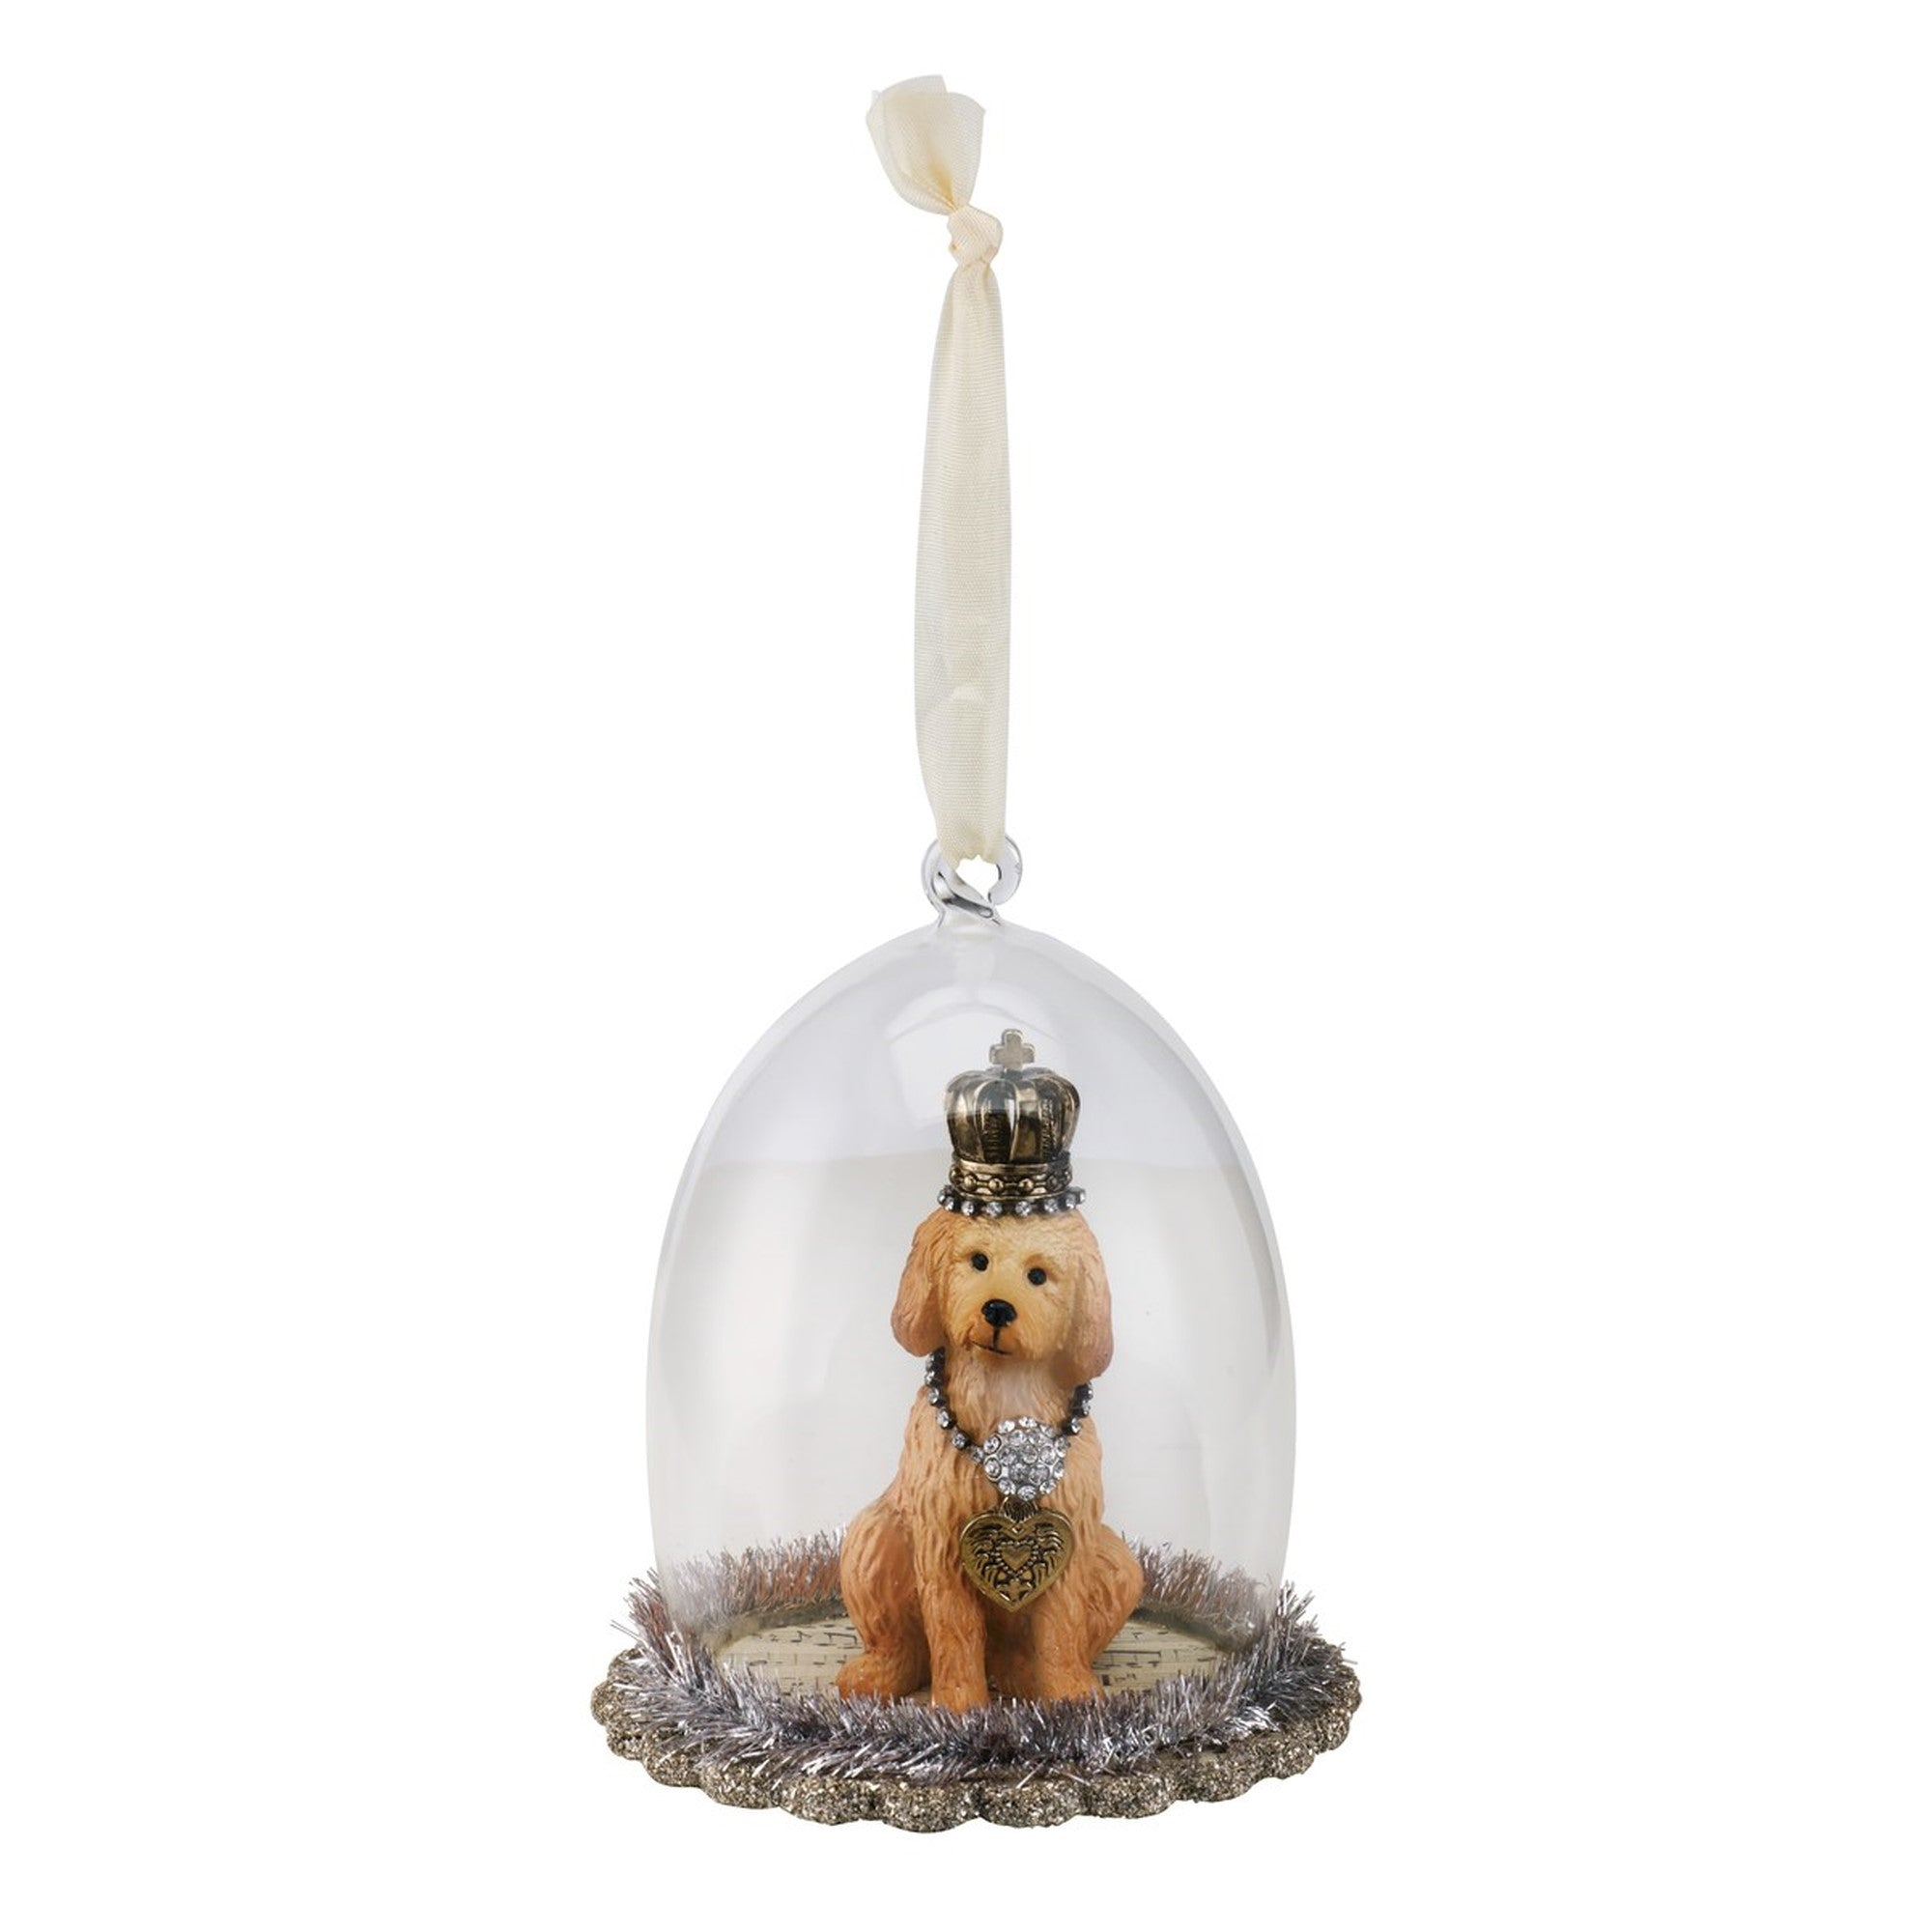 Golden Doodle Cloche Ornament, DO-Demdaco, Putti Fine Furnishings